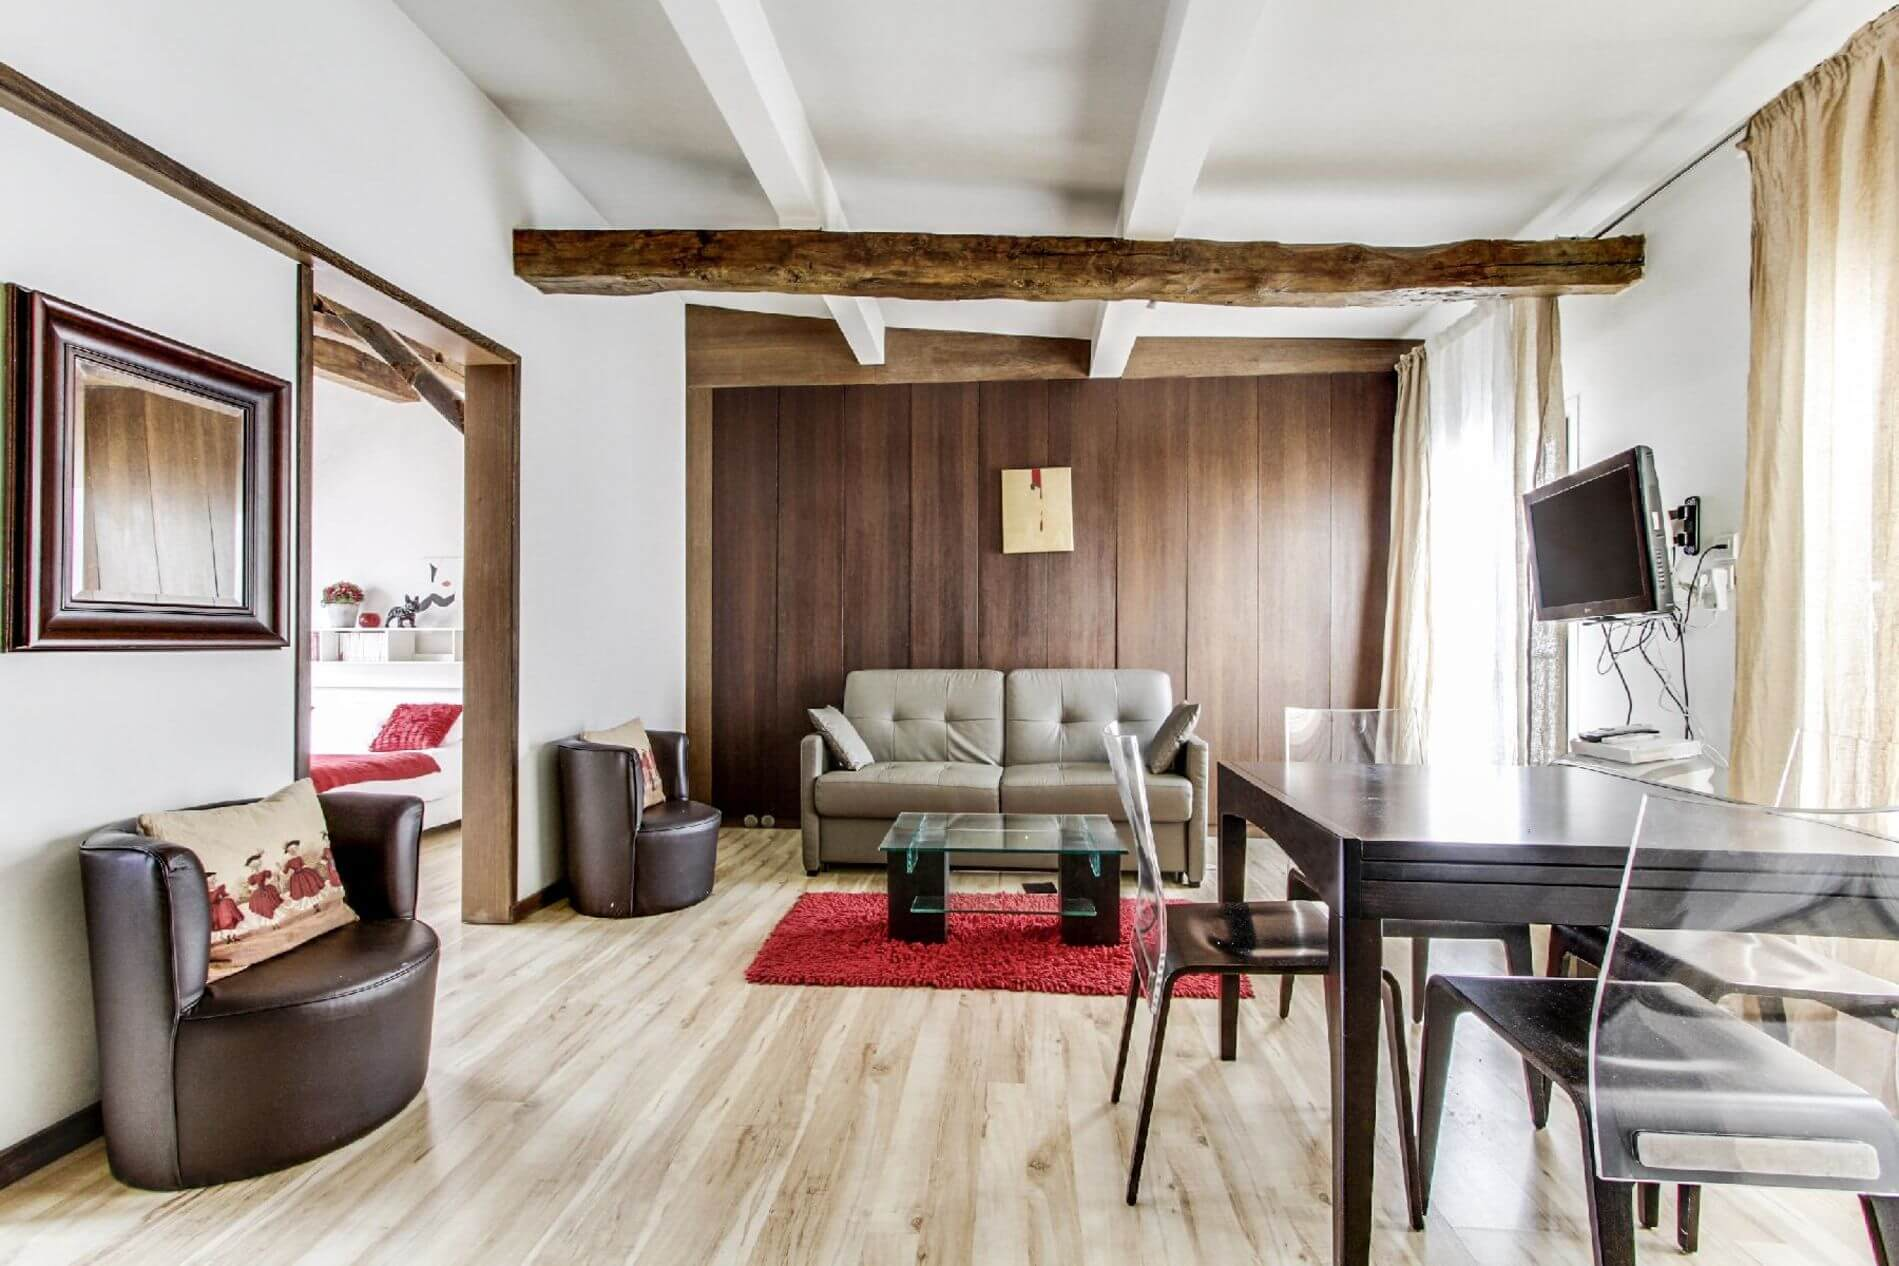 Fully equipped rental property in Paris in 8th arrondissement, Paris